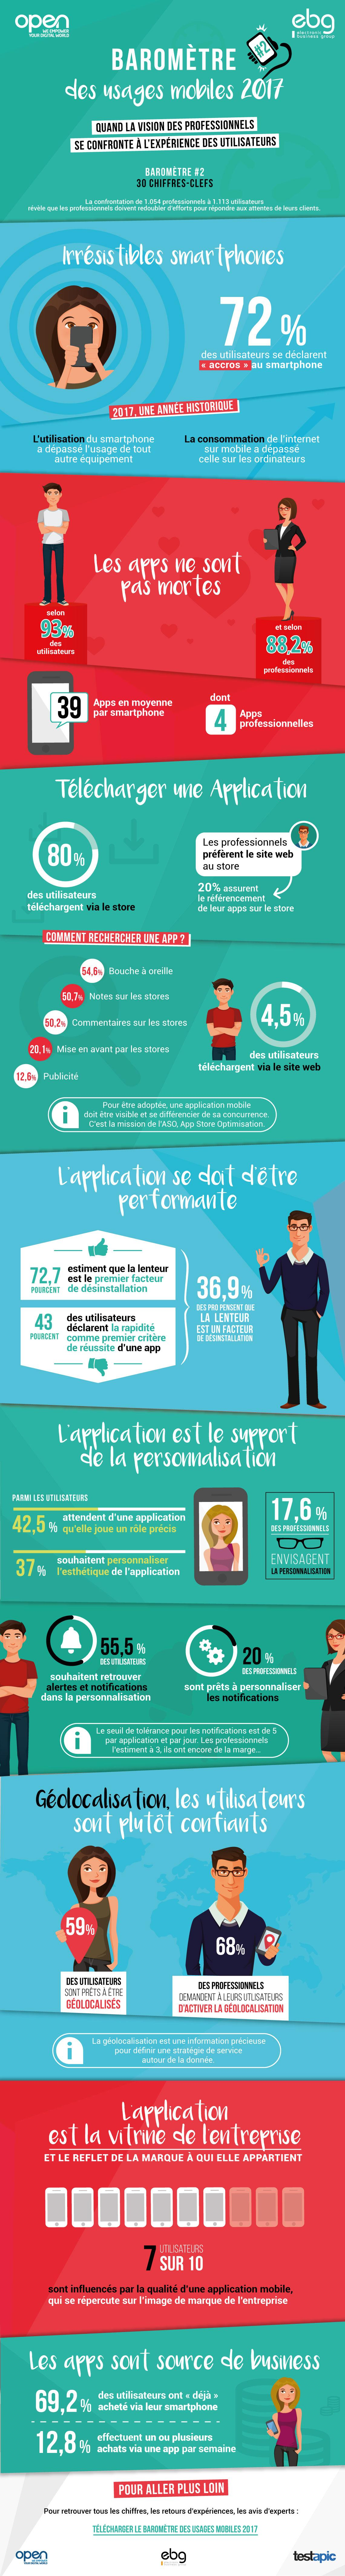 Infographie Baromètres Usages Mobiles #2